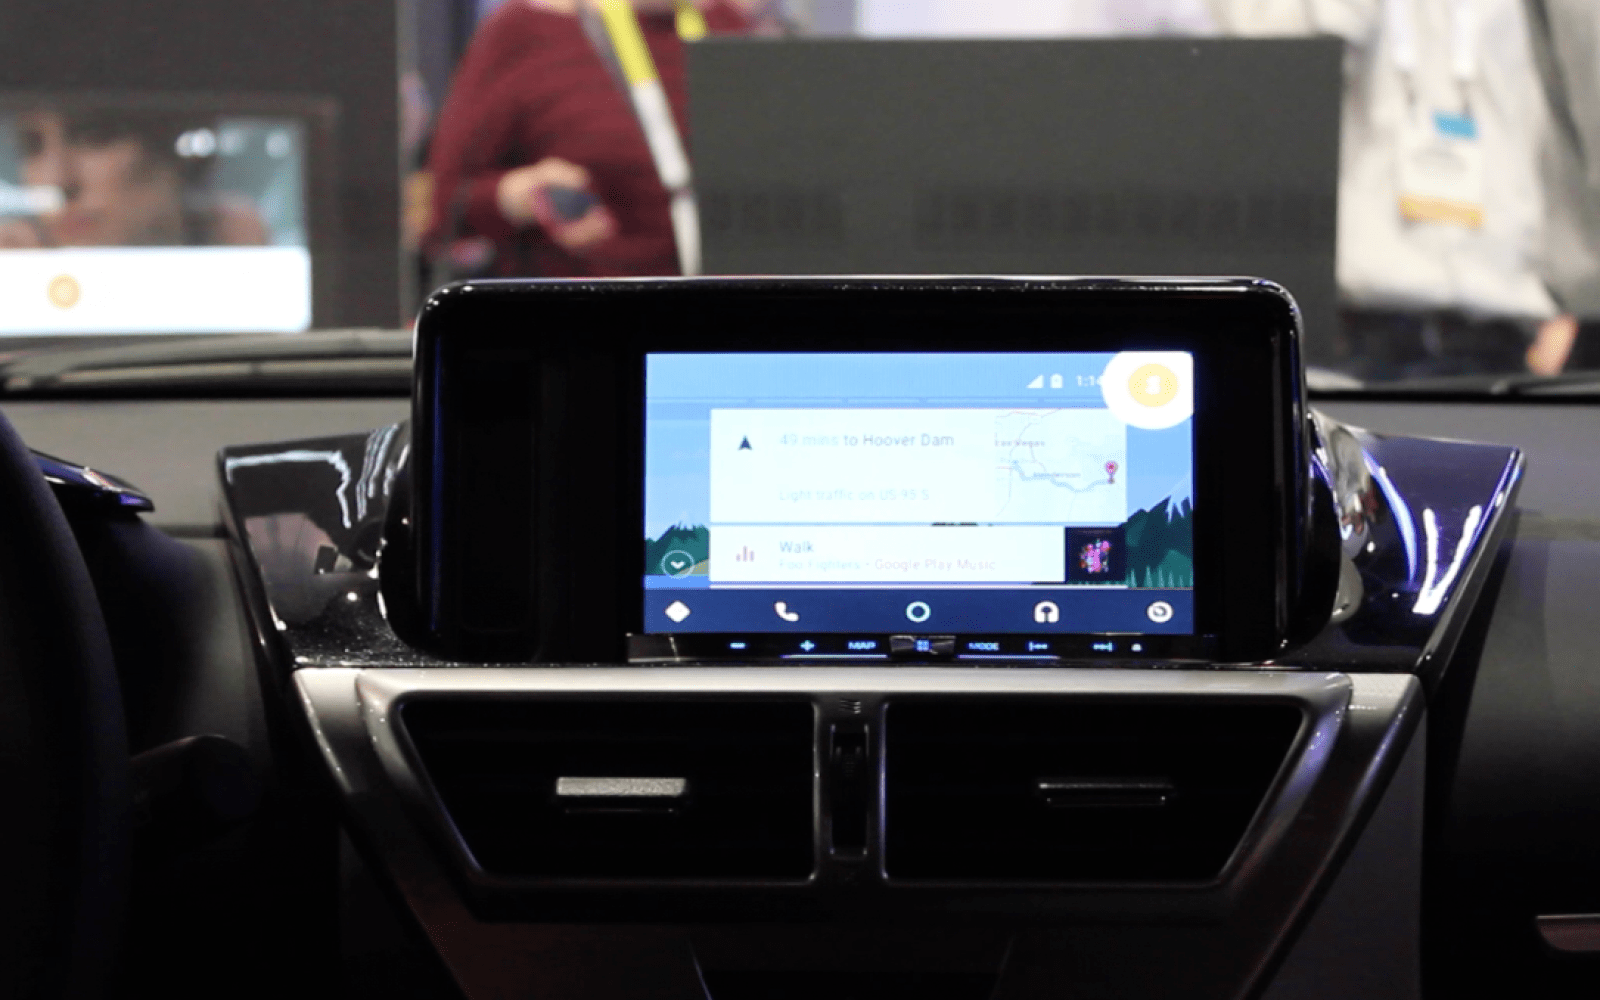 CES 2015: Hands-on with new aftermarket Android Auto